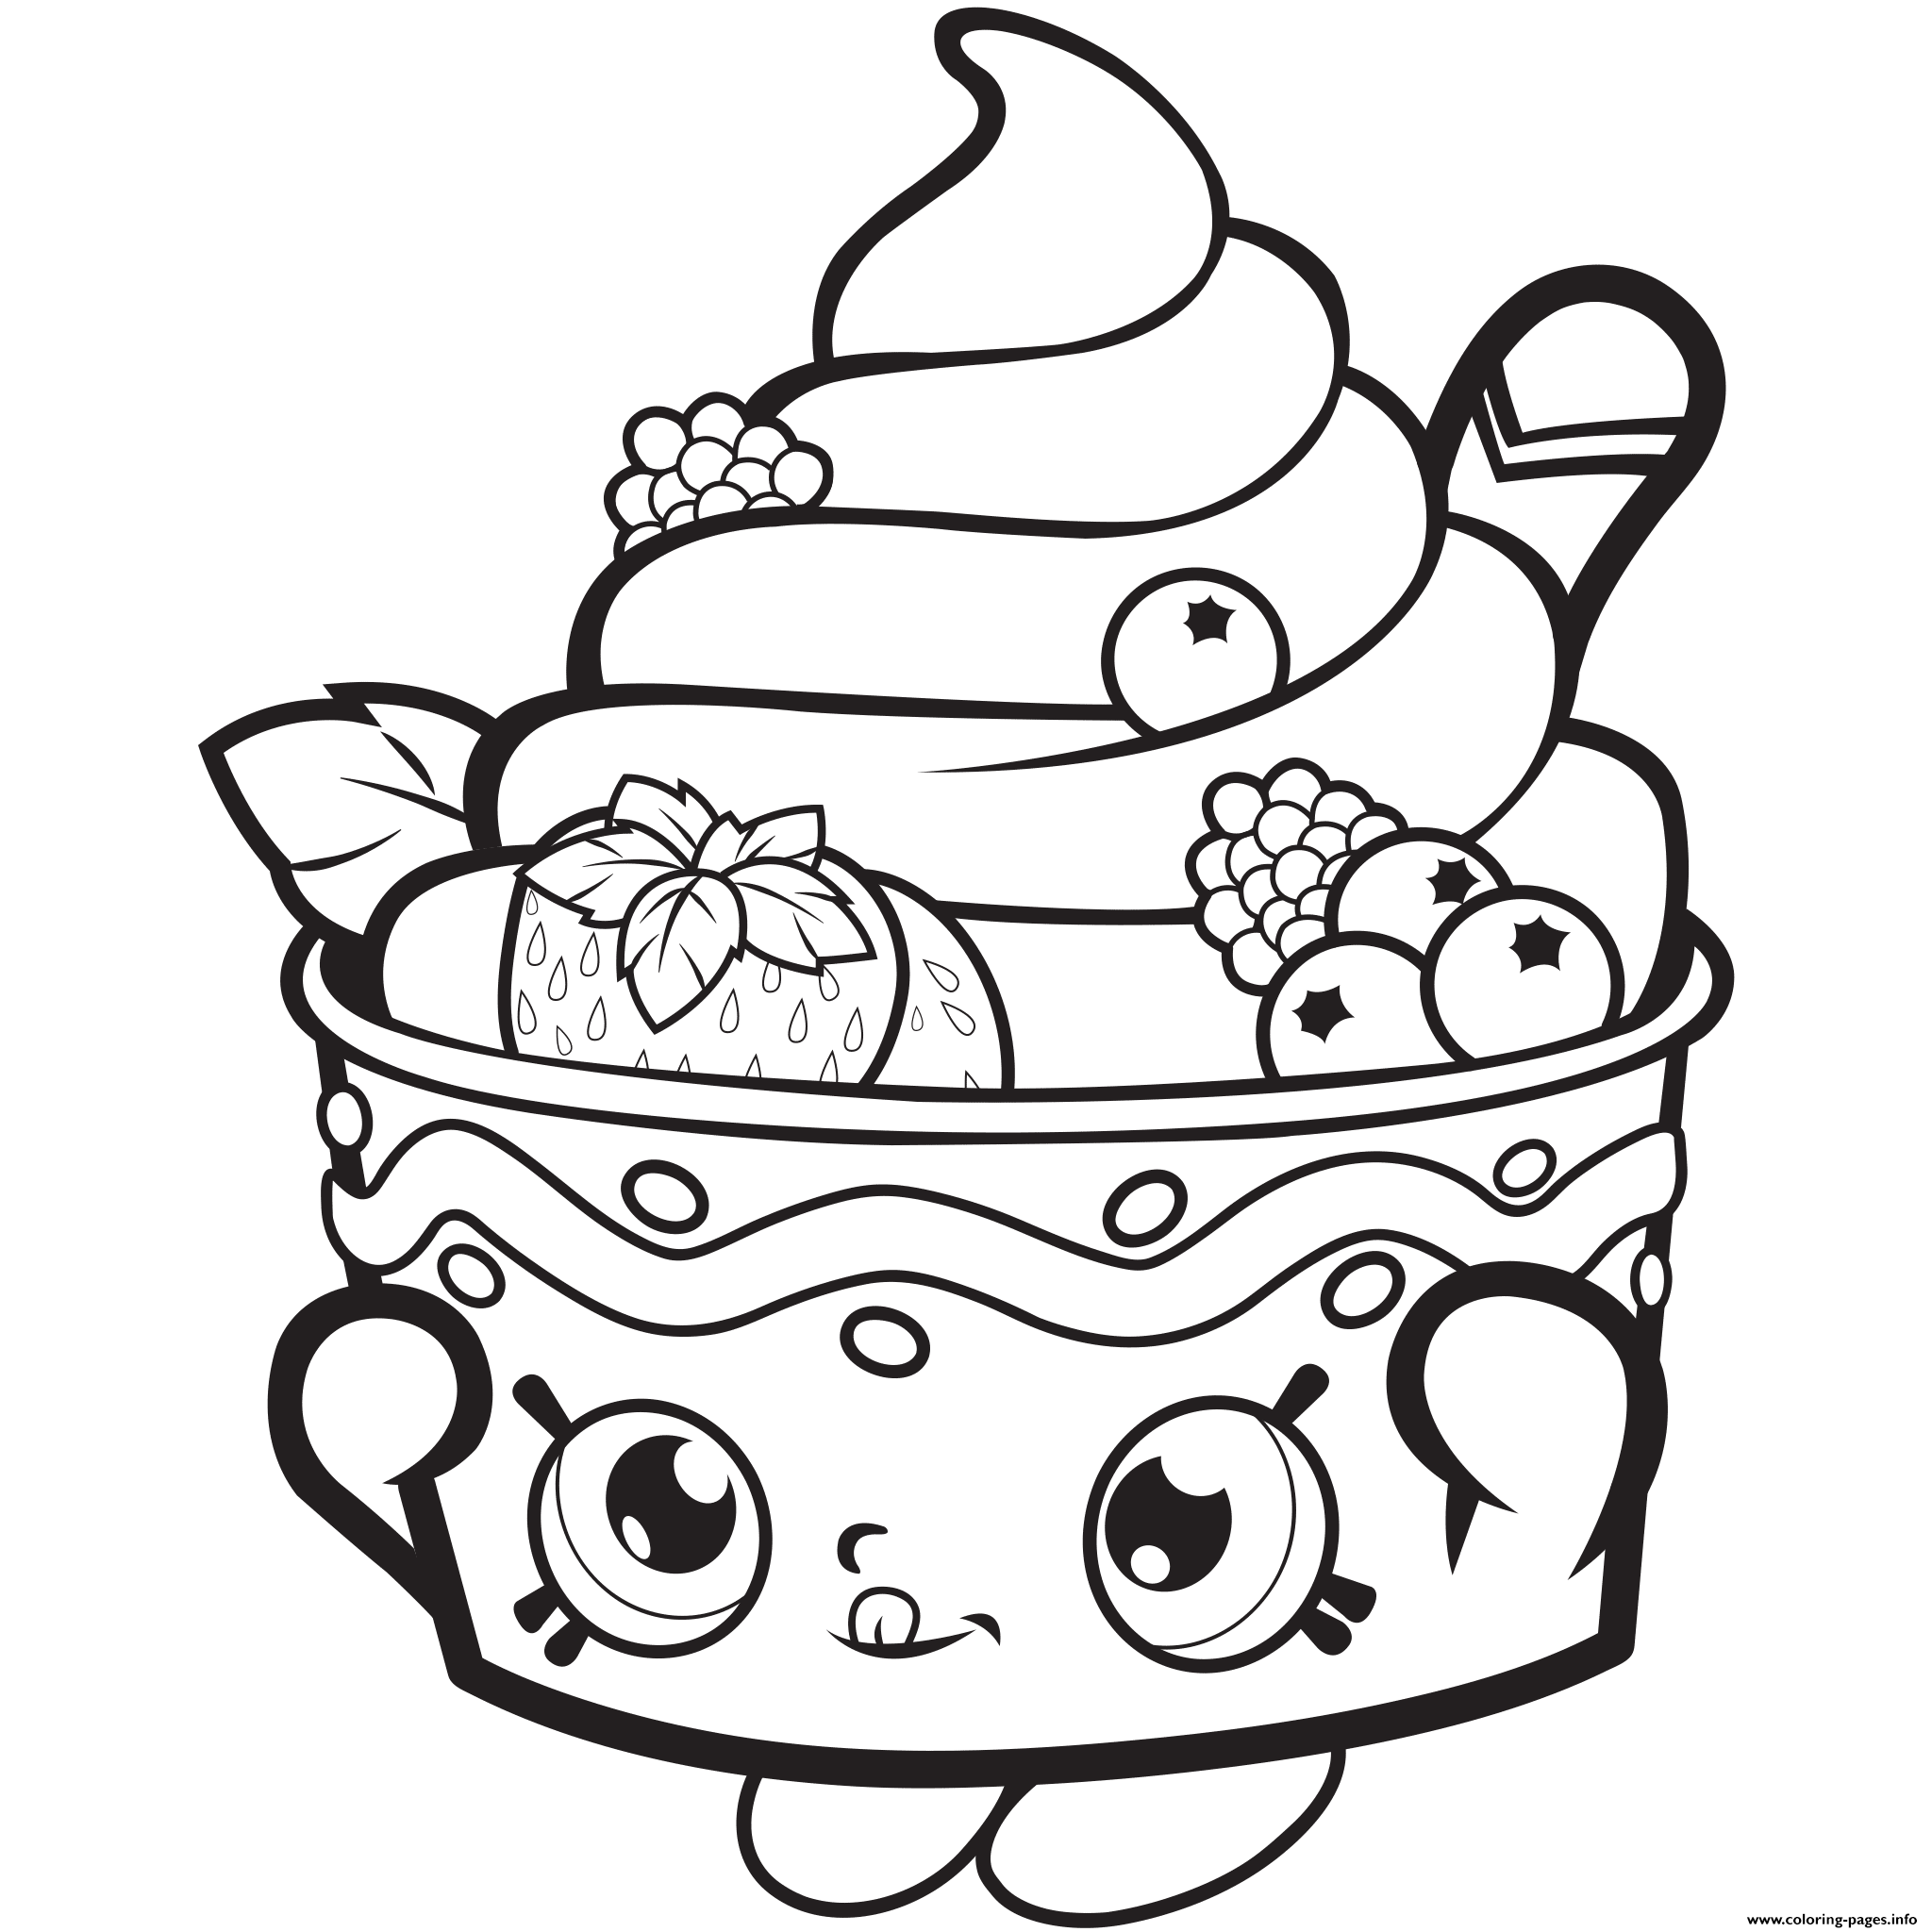 Coloring pages for frozen printable - Frozen Yo Chi Printable Shopkins Season 1 Season One Coloring Pages Print Download